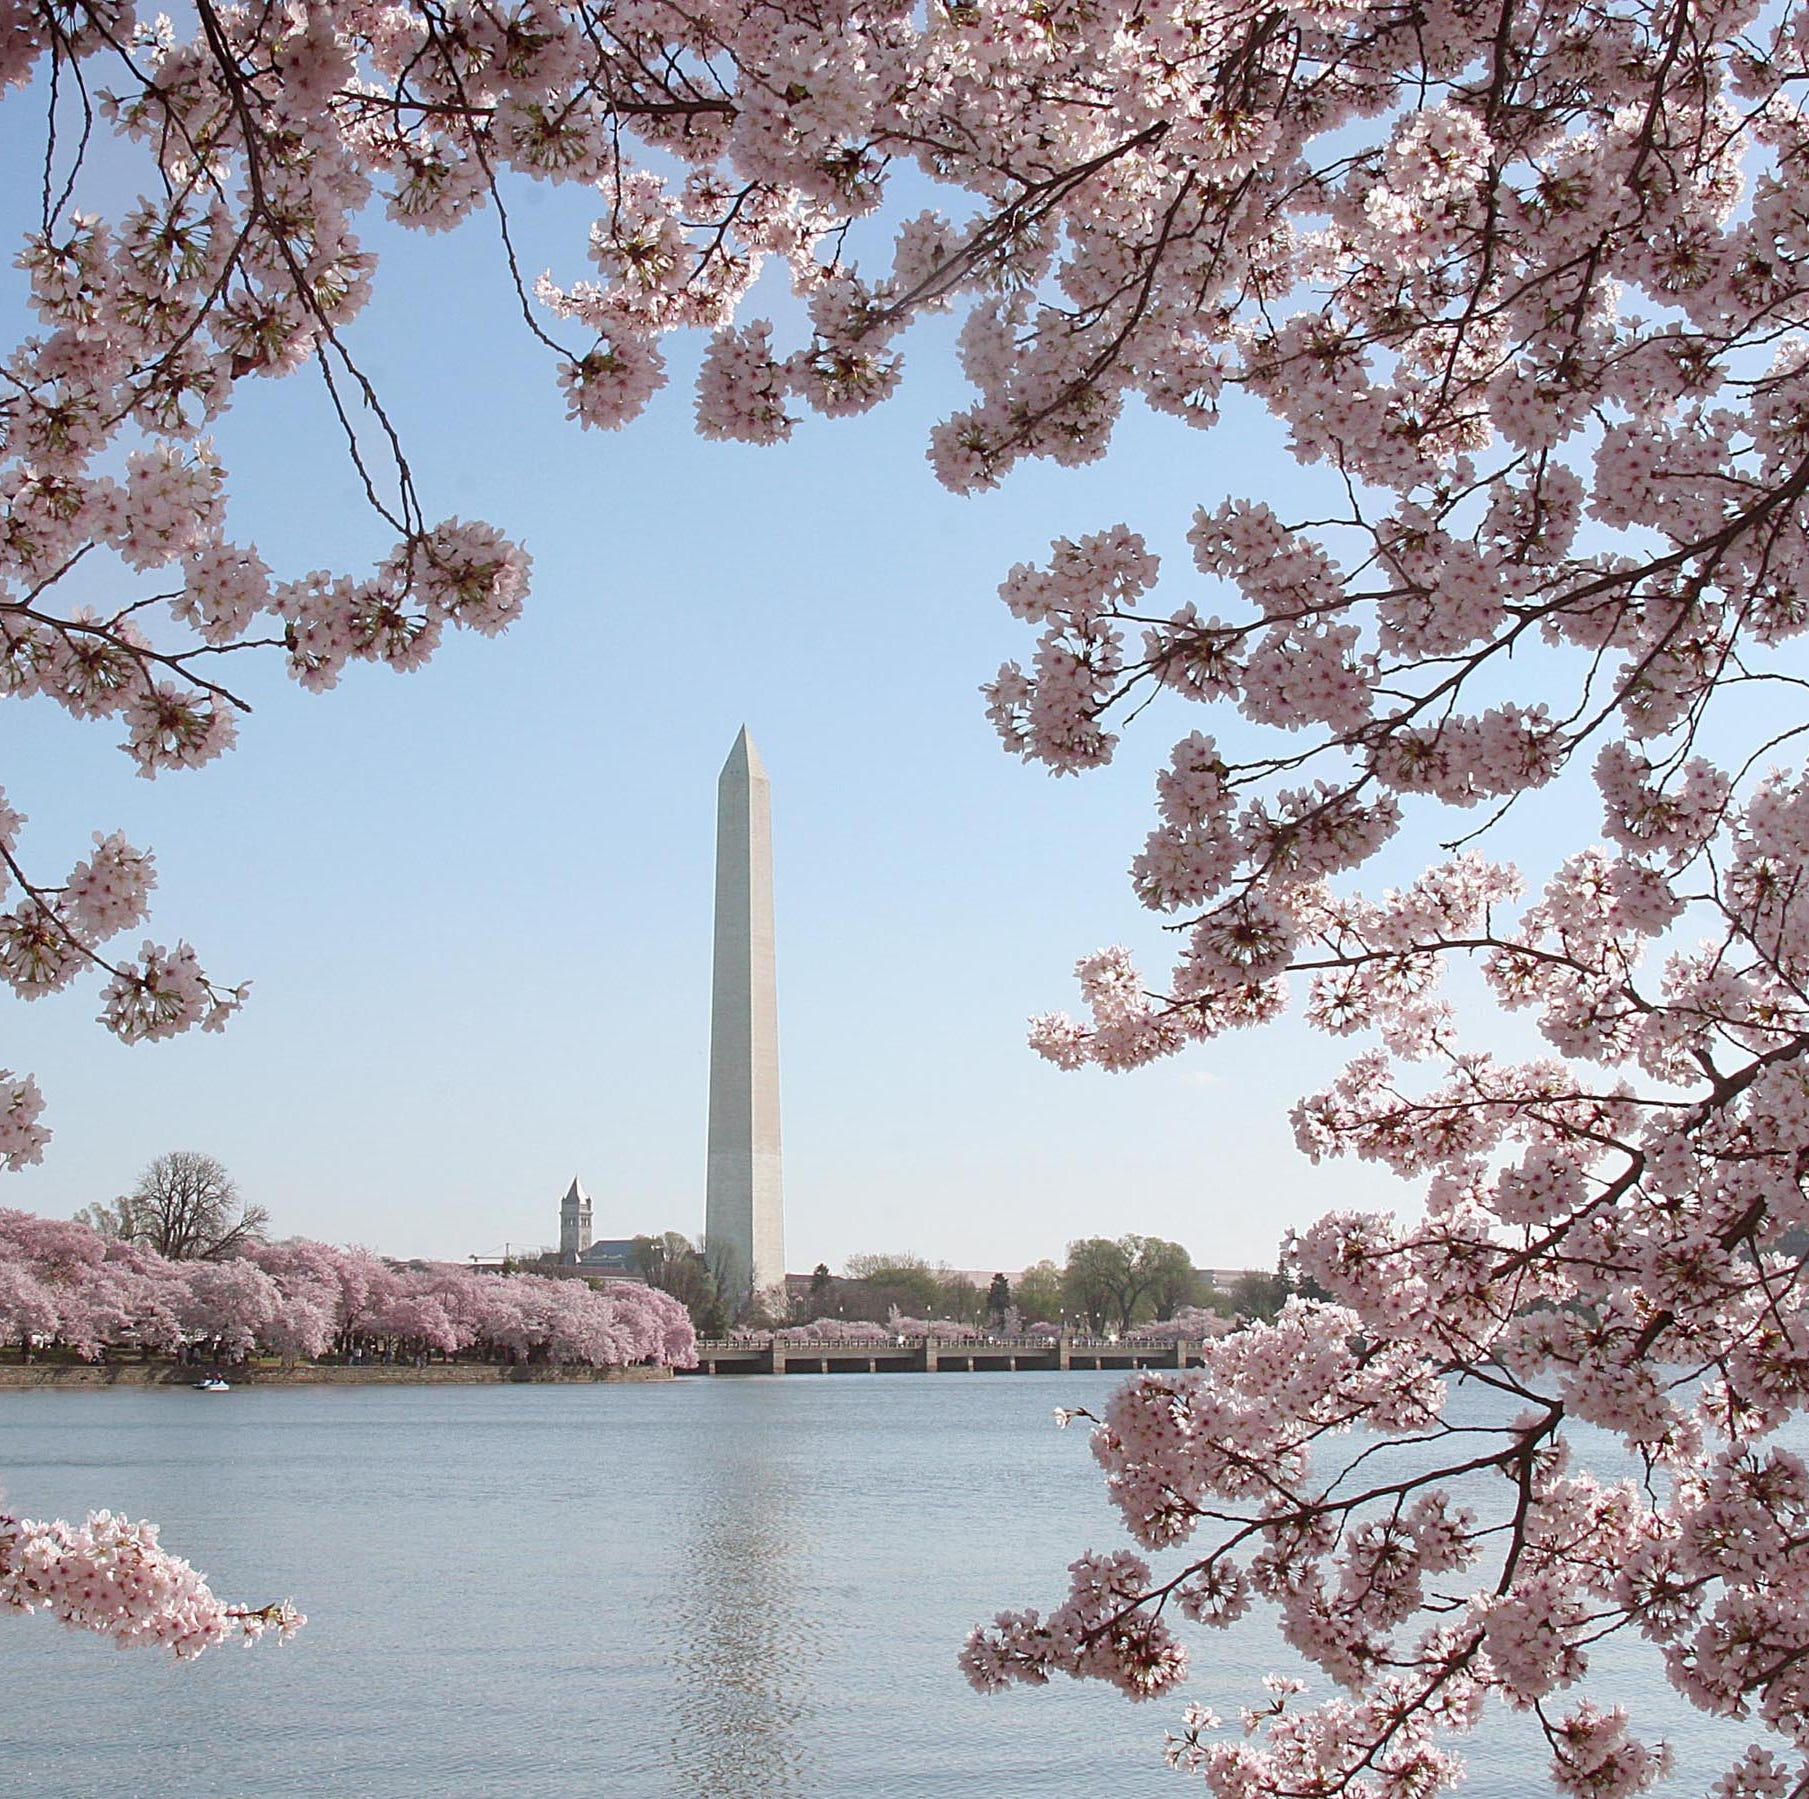 TOPSHOT - The Washington Monument is seen amid blooming cherry trees 02 April, 2006 in Washington, DC. The famous blooming of the cherry trees around the Tidal Basin , a gift from Japan in 1912, has come to symbolize the natural beauty of our nation's capital city. Hundreds of thousands of city residents and visitors from across the nation and around the world come here to witness the spectacle, hoping that the trees will be at the peak of bloom for the Cherry Blossom Festival, Washington, DC.'s rite of spring. AFP PHOTO/Karen BLEIER / AFP PHOTO / KAREN BLEIERKAREN BLEIER/AFP/Getty Images ORIG FILE ID: 550824452